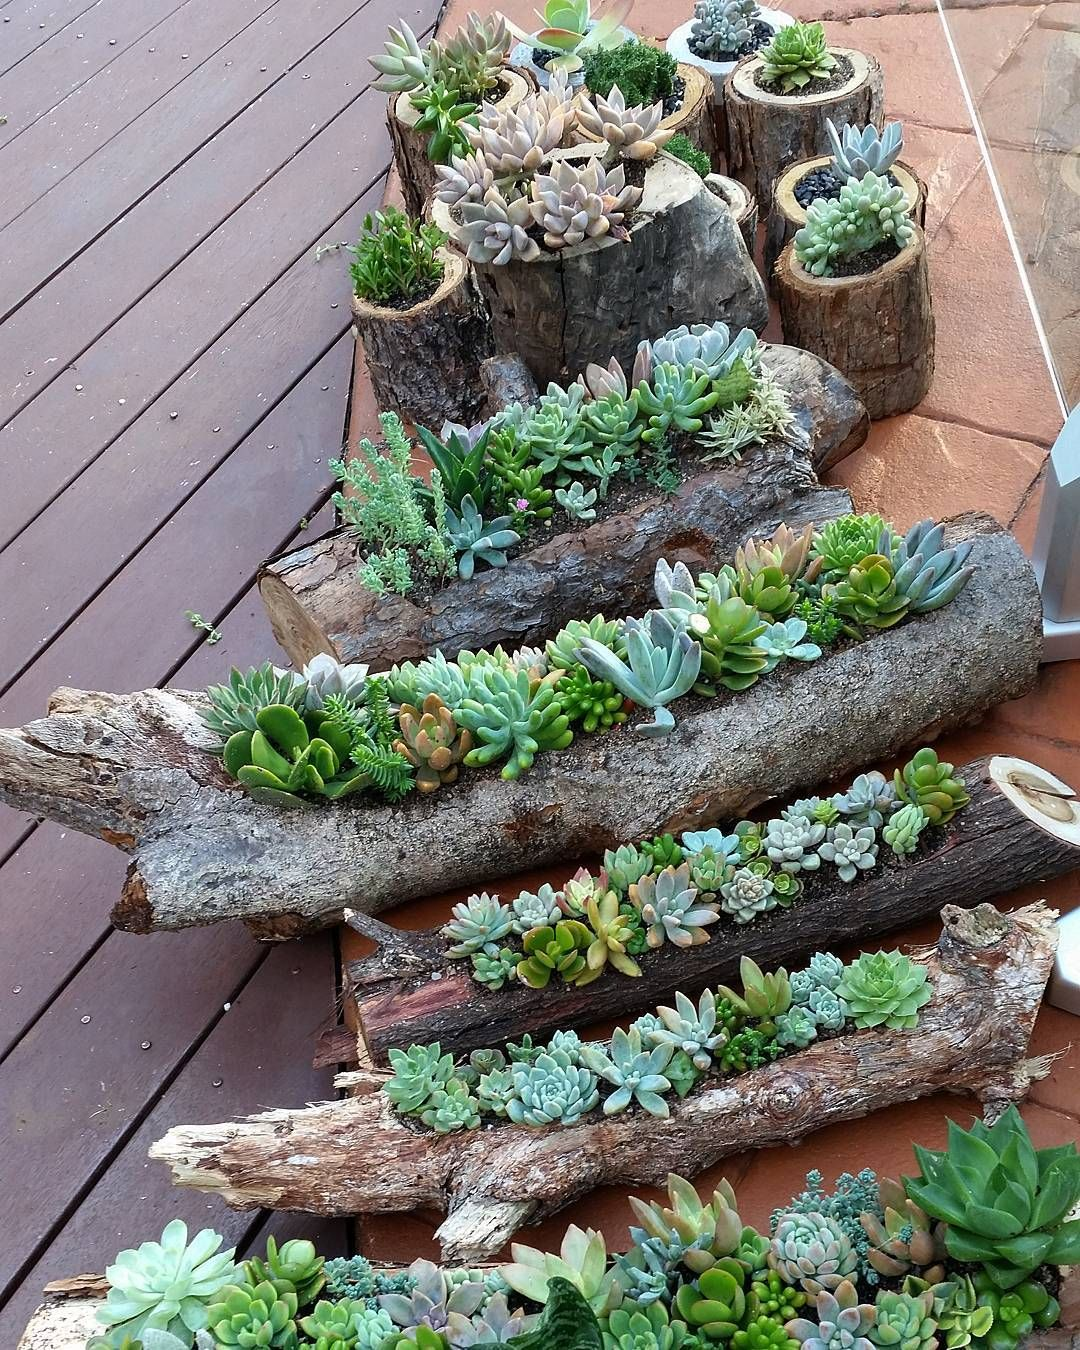 Diy Flower Gardening Ideas And Planter Projects: DIY Log Succulent Planter Sounds Like An Excellent Idea